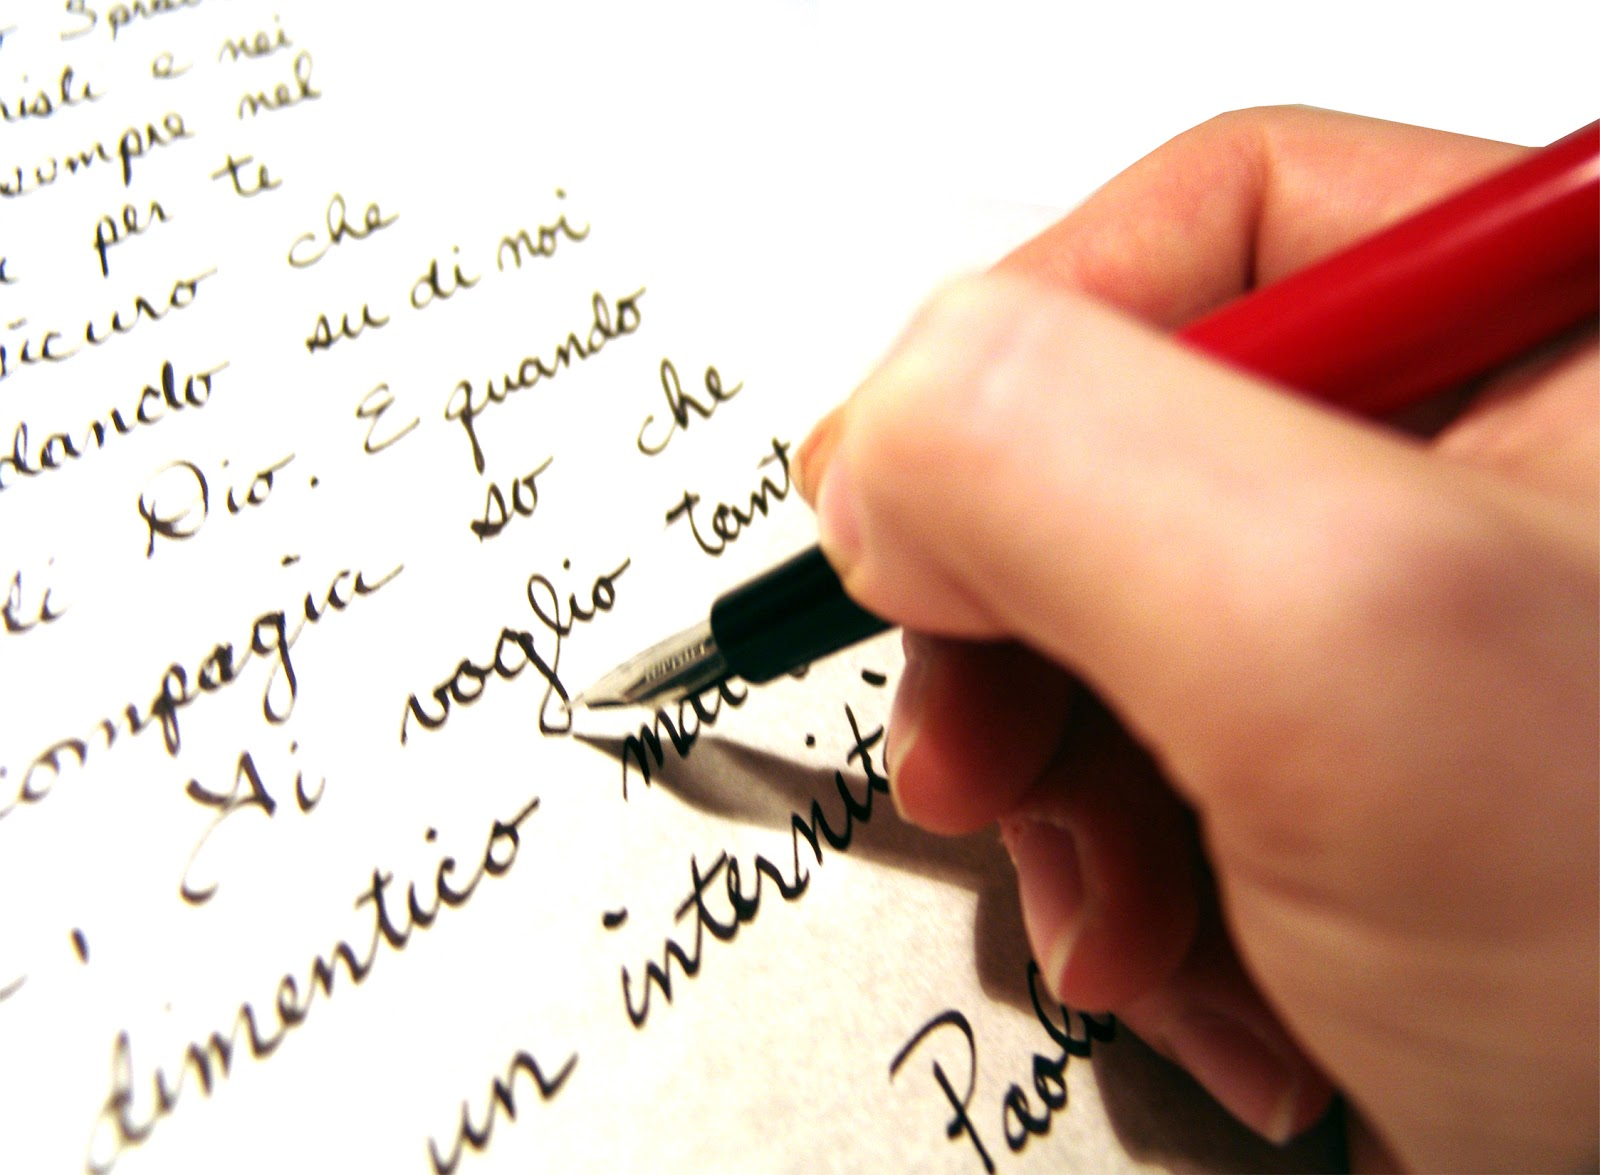 handwriting essay Sometimes, the lecturer's instructions might be hard to comprehend as such, students are capable of providing essays that lack meaning if you find yourself in such a situation, you can request professional essay writing services from us.